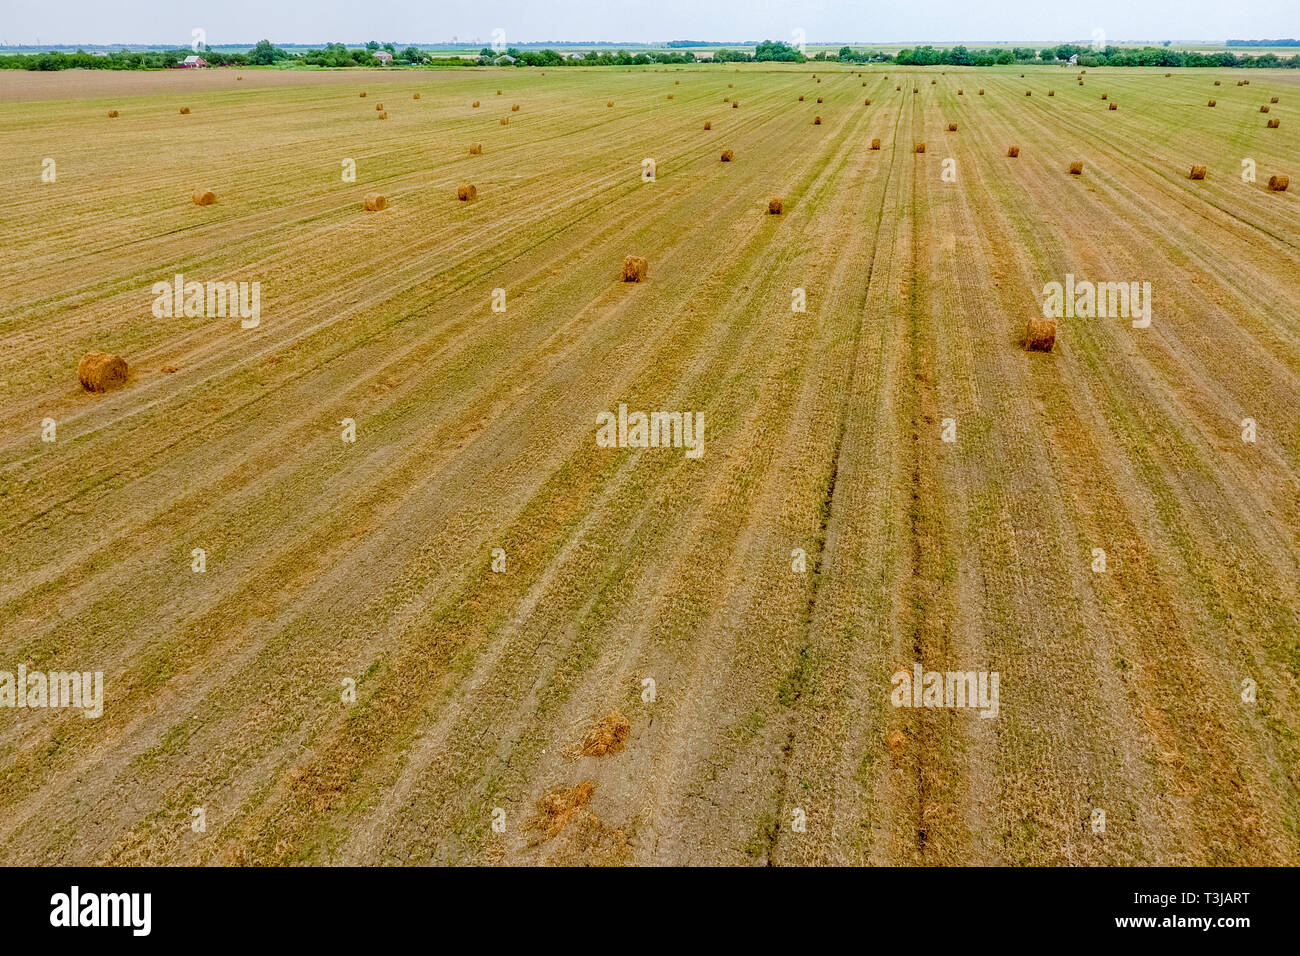 Bales of hay in the field. Harvesting hay for livestock feed. Landscape field with hay. - Stock Image